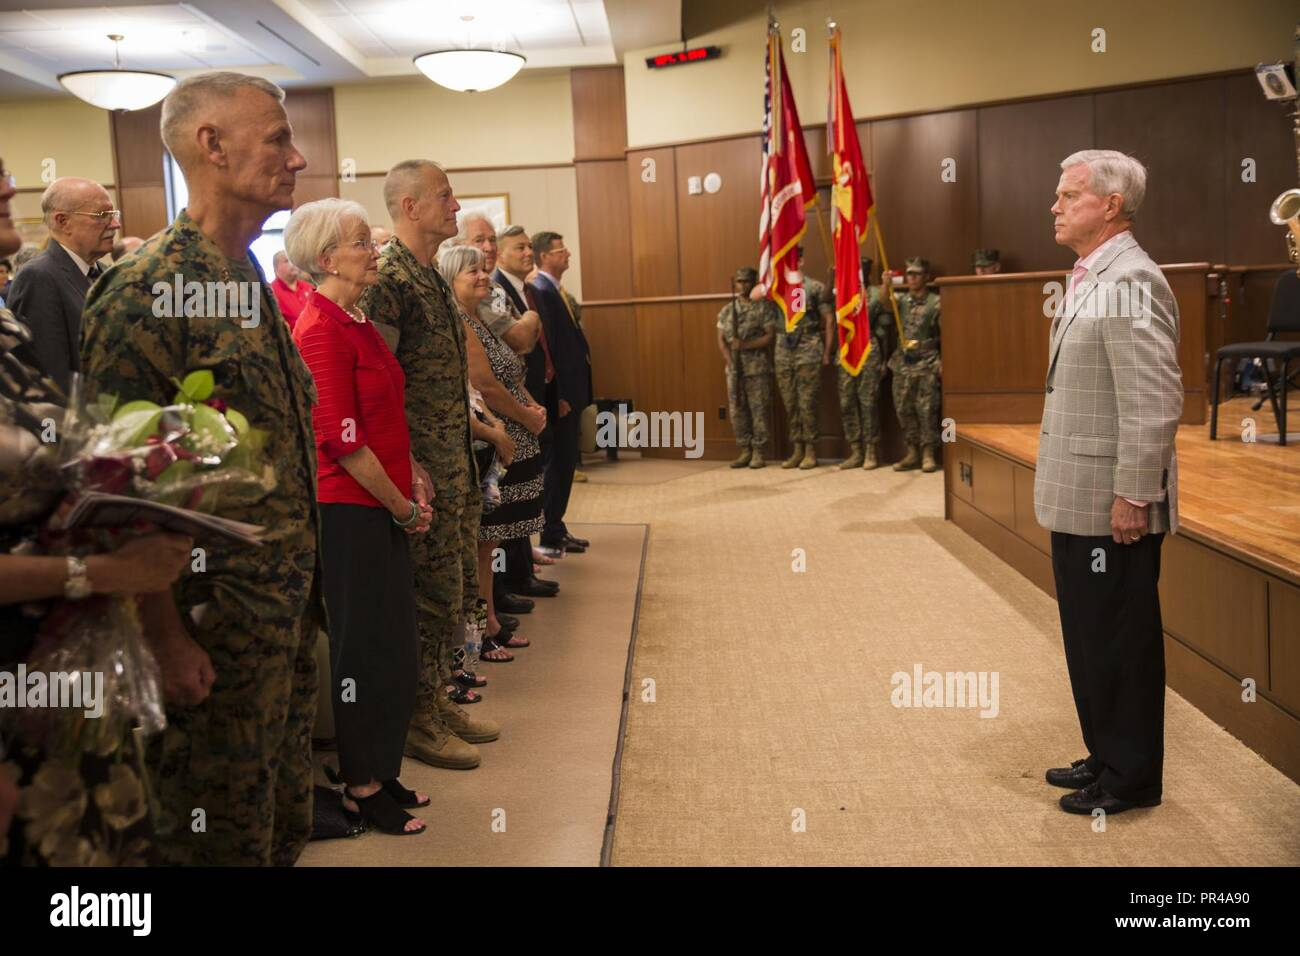 Retired Marine Gen. James F. Amos, 35th Commandant of the Marine Corps, stands at attention as colors are presented in his honor at Marine Corps Support Facility New Orleans, Sept. 8, 2018. Amos was the retiring officer for Lt. Gen. Rex C. McMillian, outgoing commander of Marine Forces Reserve and Marine Forces North. Stock Photo